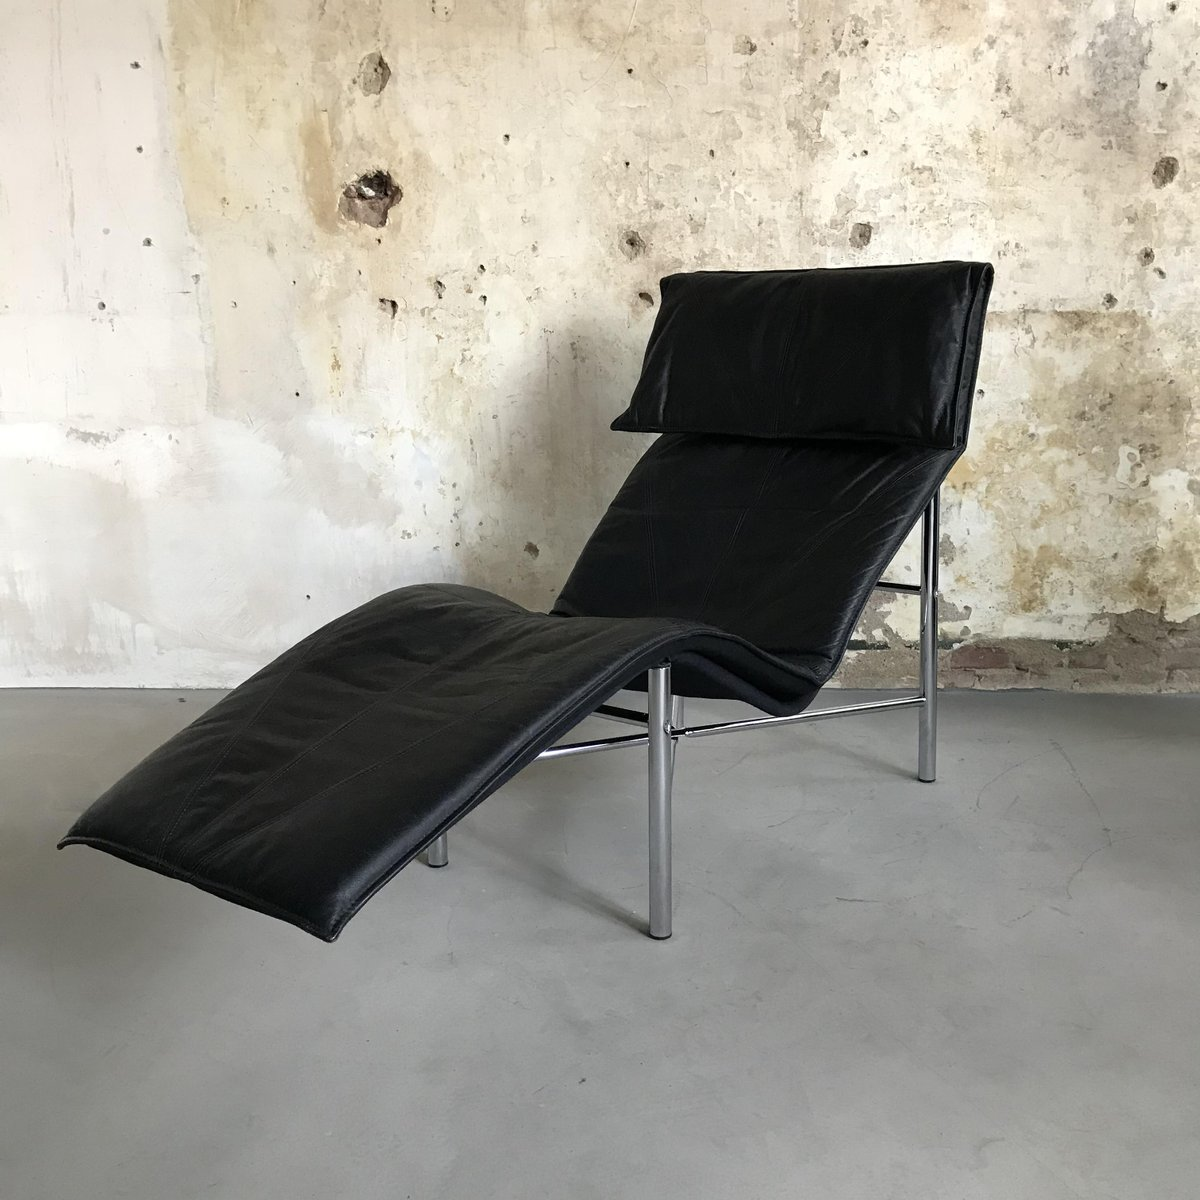 Vintage Ikea Lounge Chair Vintage Model Skye Chaise Lounge By Tord Bjorklund For